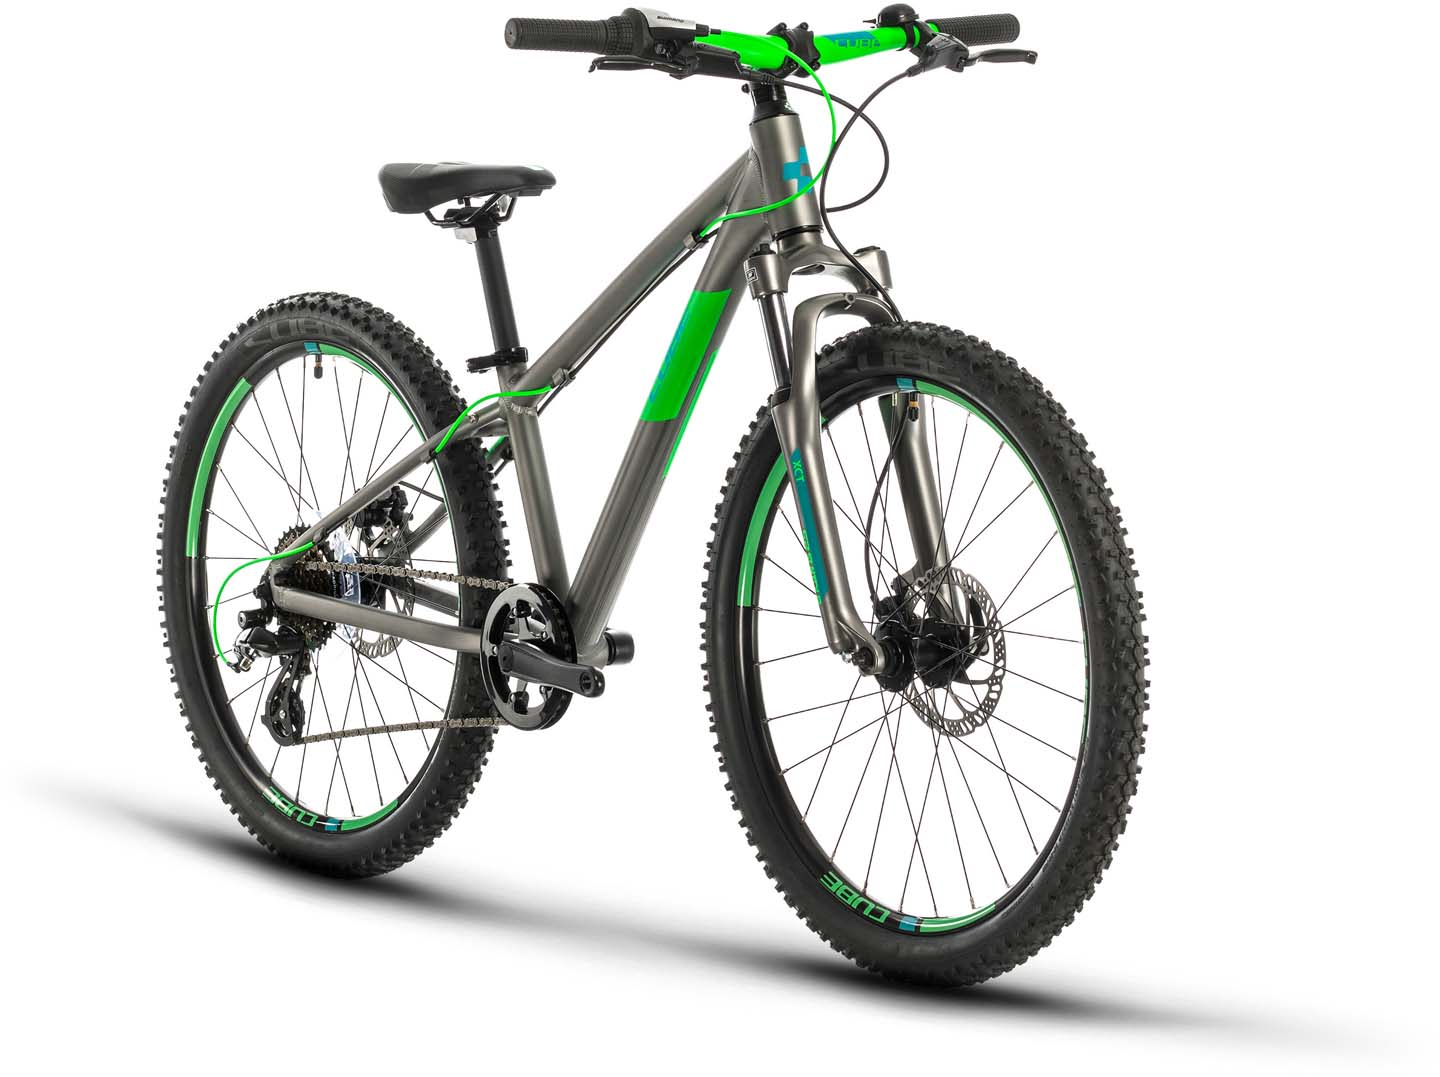 Cube Acid 240 Disc Grey N Neongreen 2021 Kid Bike 24 Inches Mhw